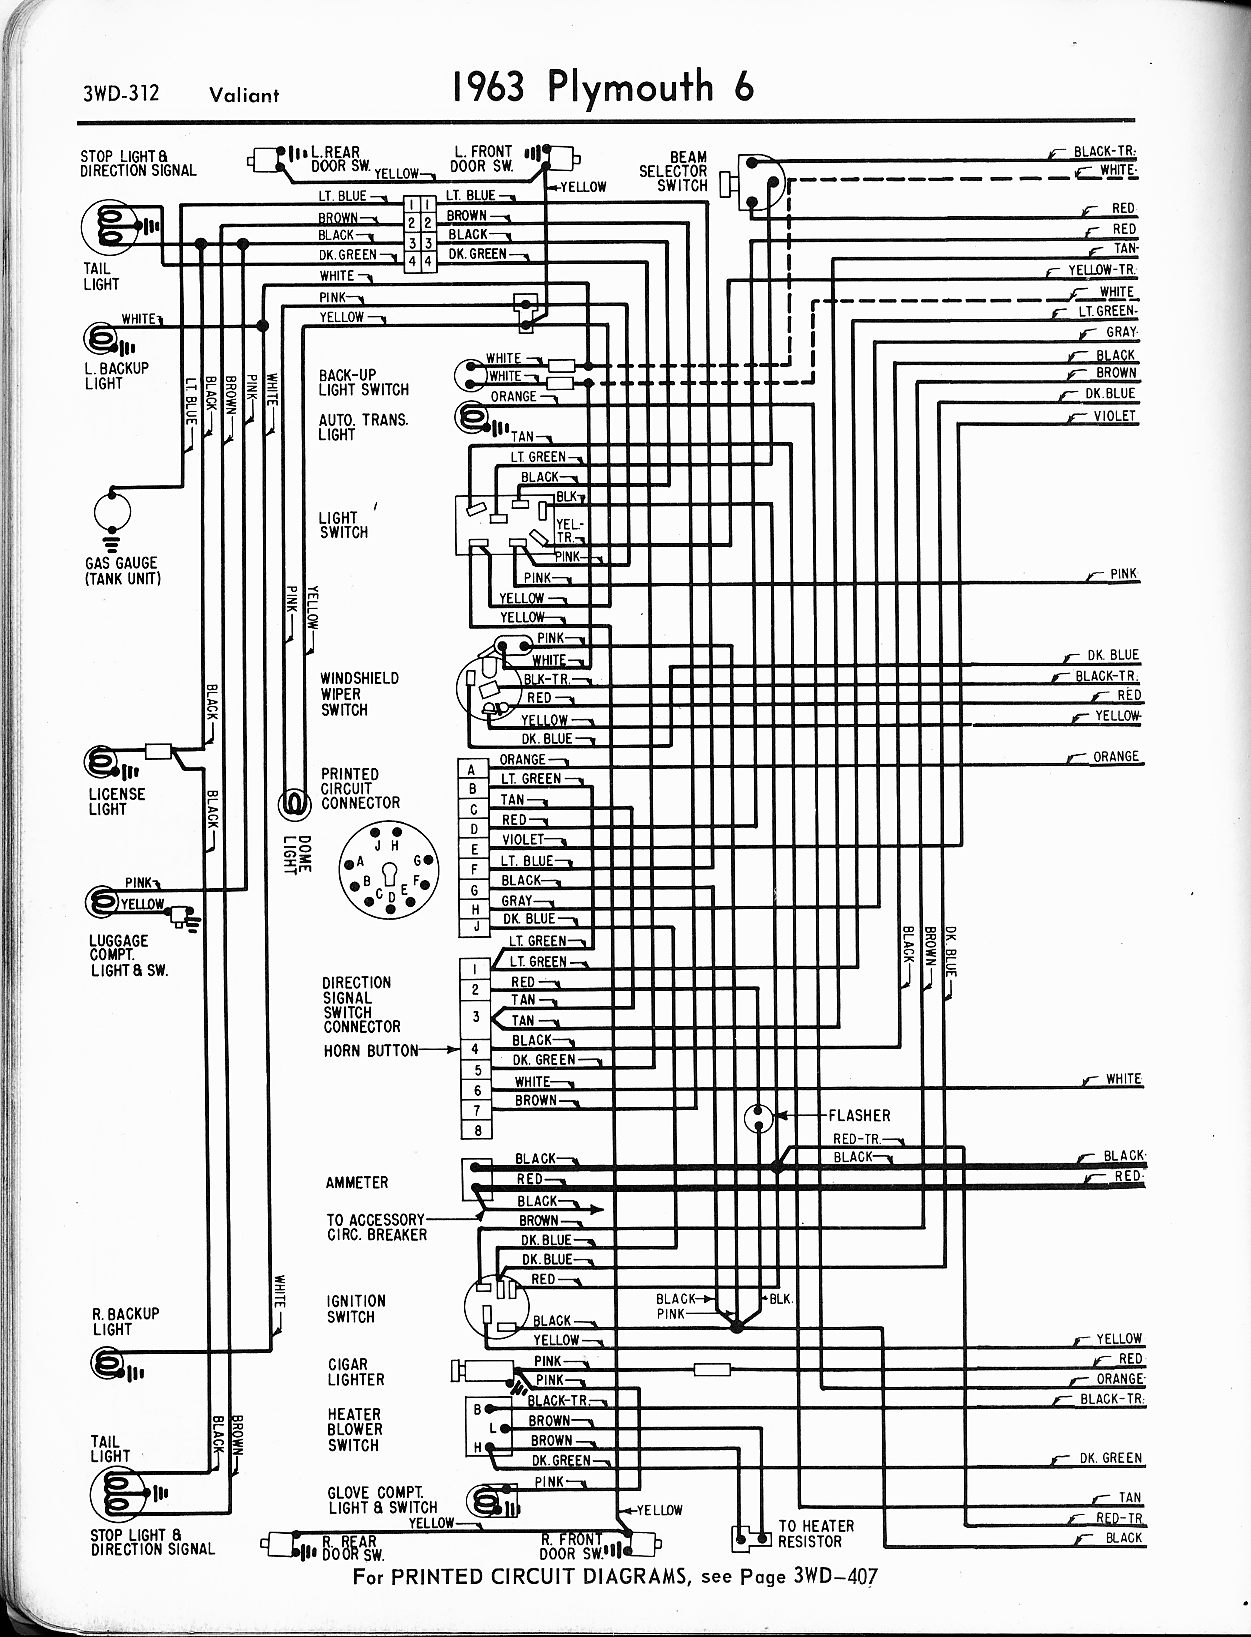 1956 - 1965 Plymouth Wiring - The Old Car Manual Project  Mopar Wiring Diagram on mopar junk yards, mopar crate engines, mopar pin up, mopar graveyard, mopar no car, mopar barn finds, mopar big block, mopar 318 engine, mopar hei wiring, mopar start system diagram, mopar street rods, dodge truck electrical diagrams, mopar super bee, mopar super stock, mopar starter relay, mopar resto mods, mopar desktop theme, smart car diagrams, mopar hemi engine, chrysler fuel diagrams,